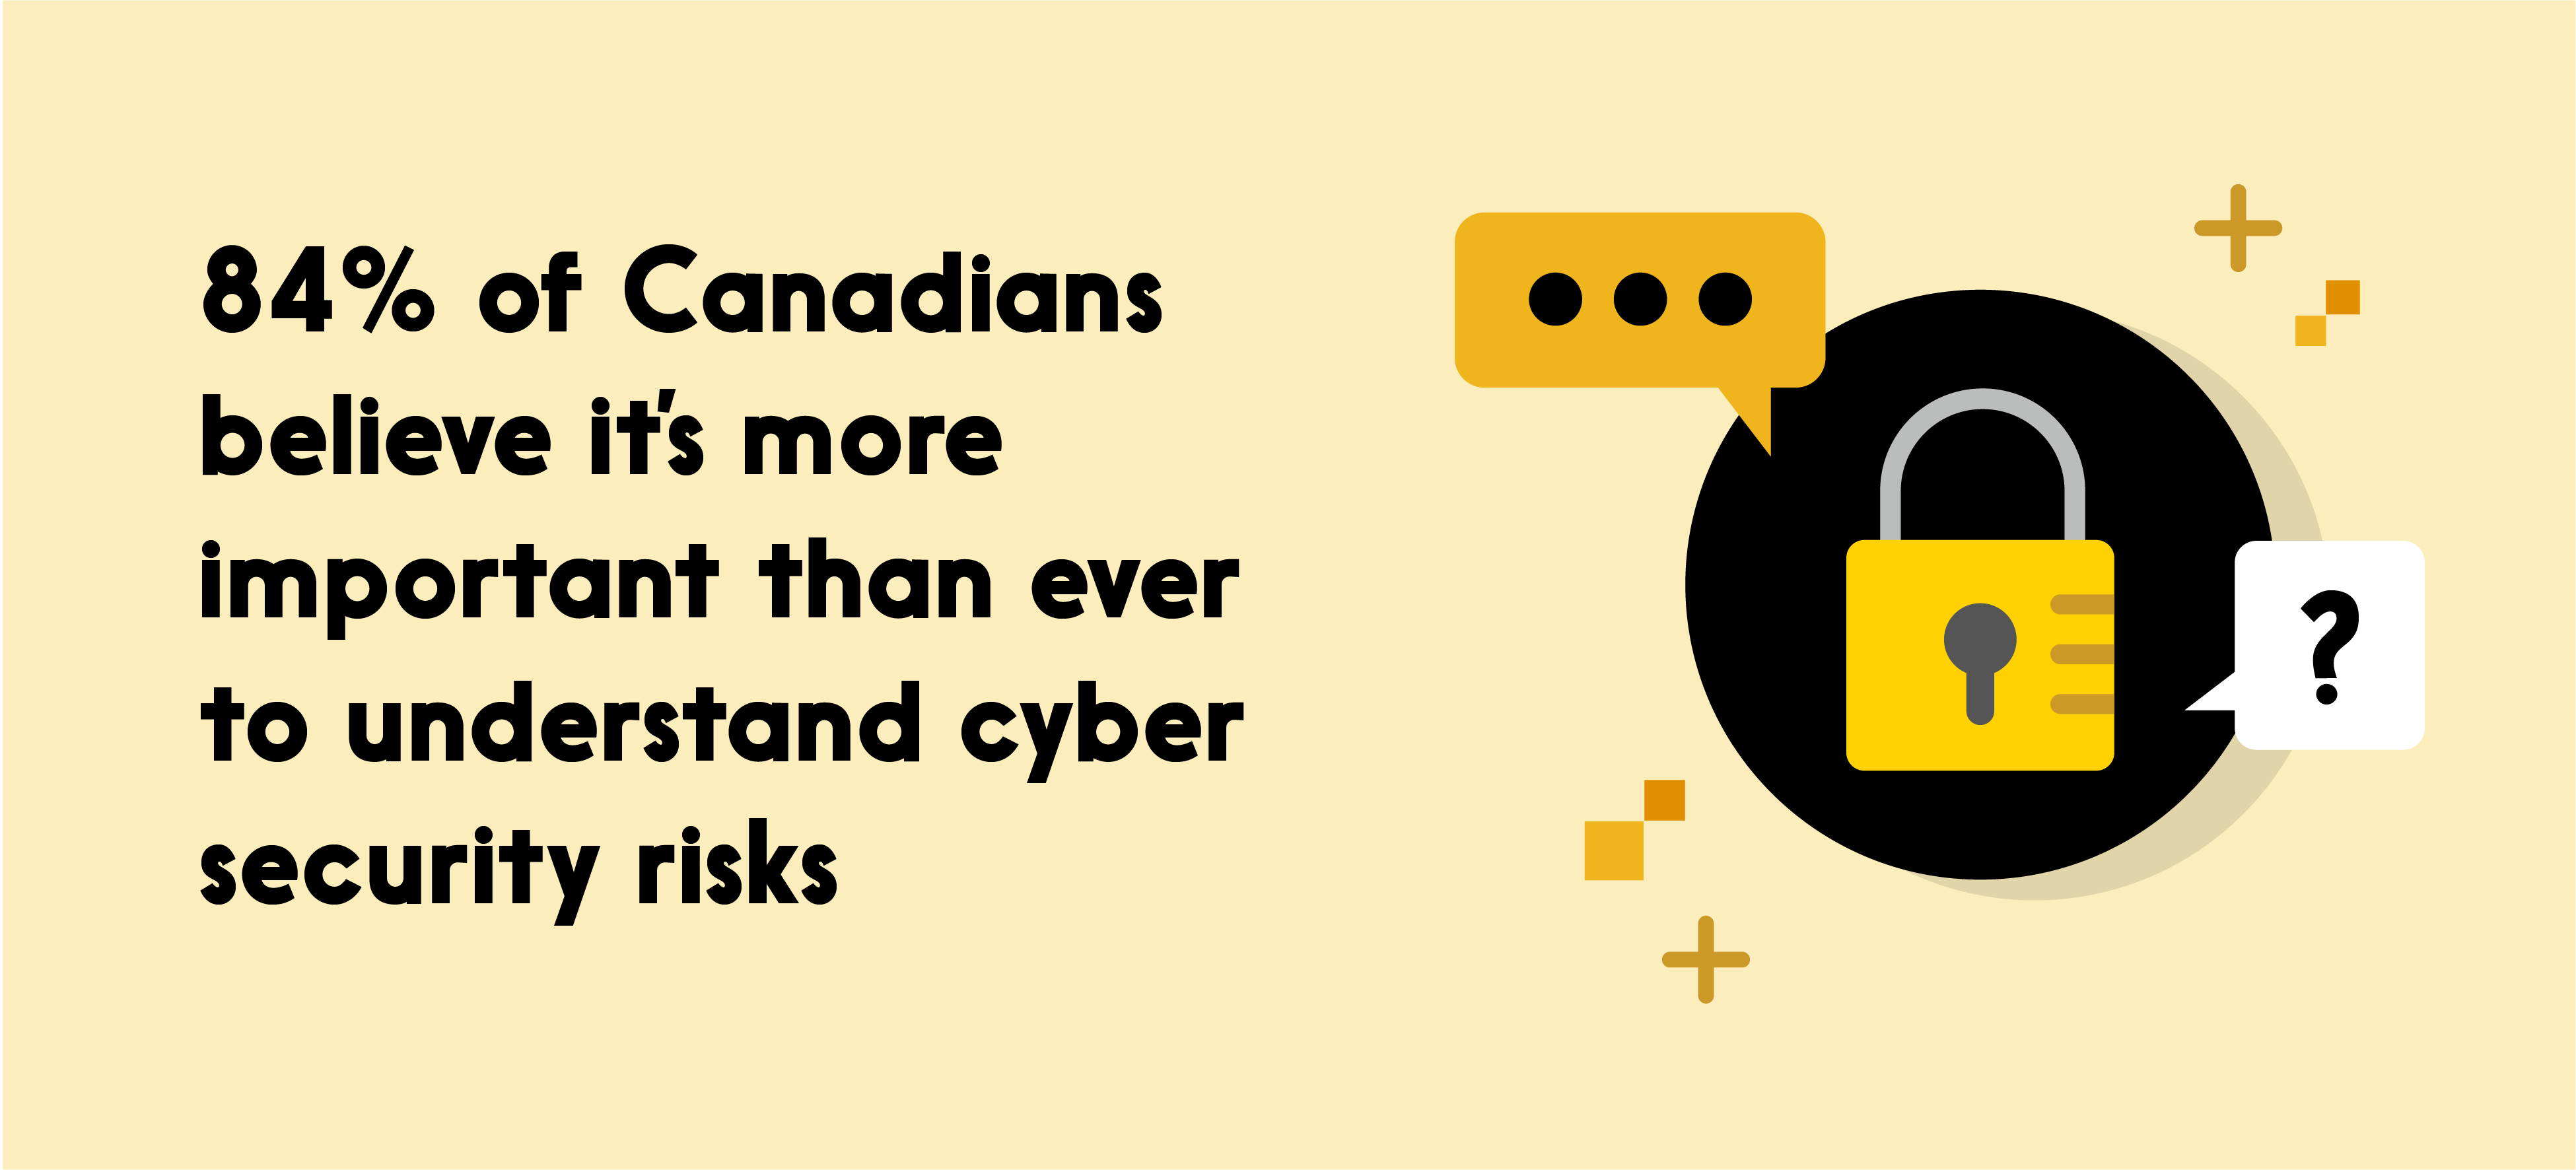 Text reads: 84% of Canadians believe it's more important than ever to understand cyber security risks